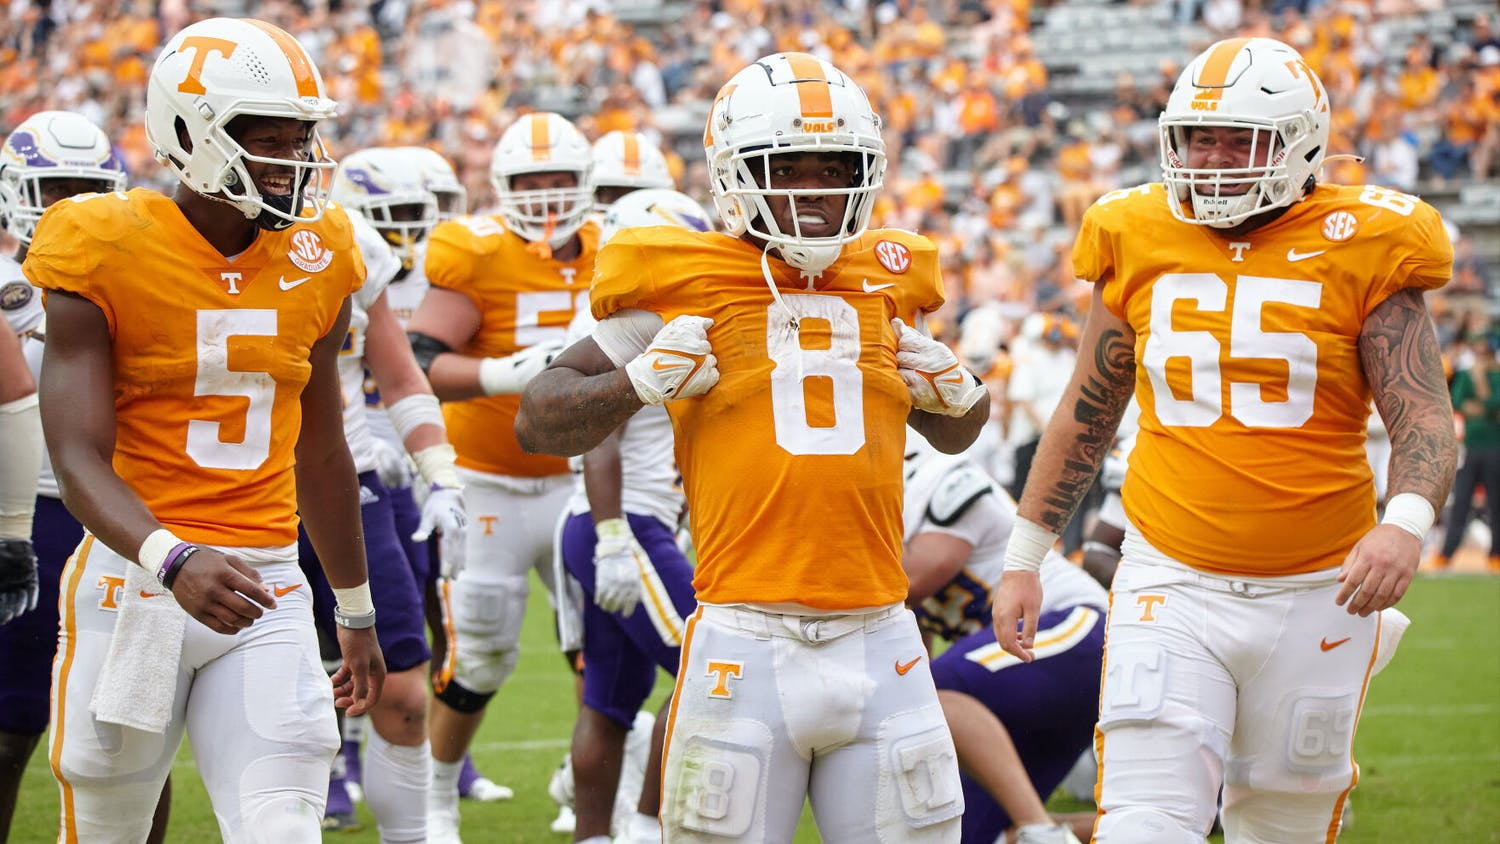 Tiyon Evans, #8, celebrates after the Vols score a field goal in the football game against Tennessee Tech, held in the Neyland Stadium on September 18th. Photo by Nathan Lick of The Daily Beacon